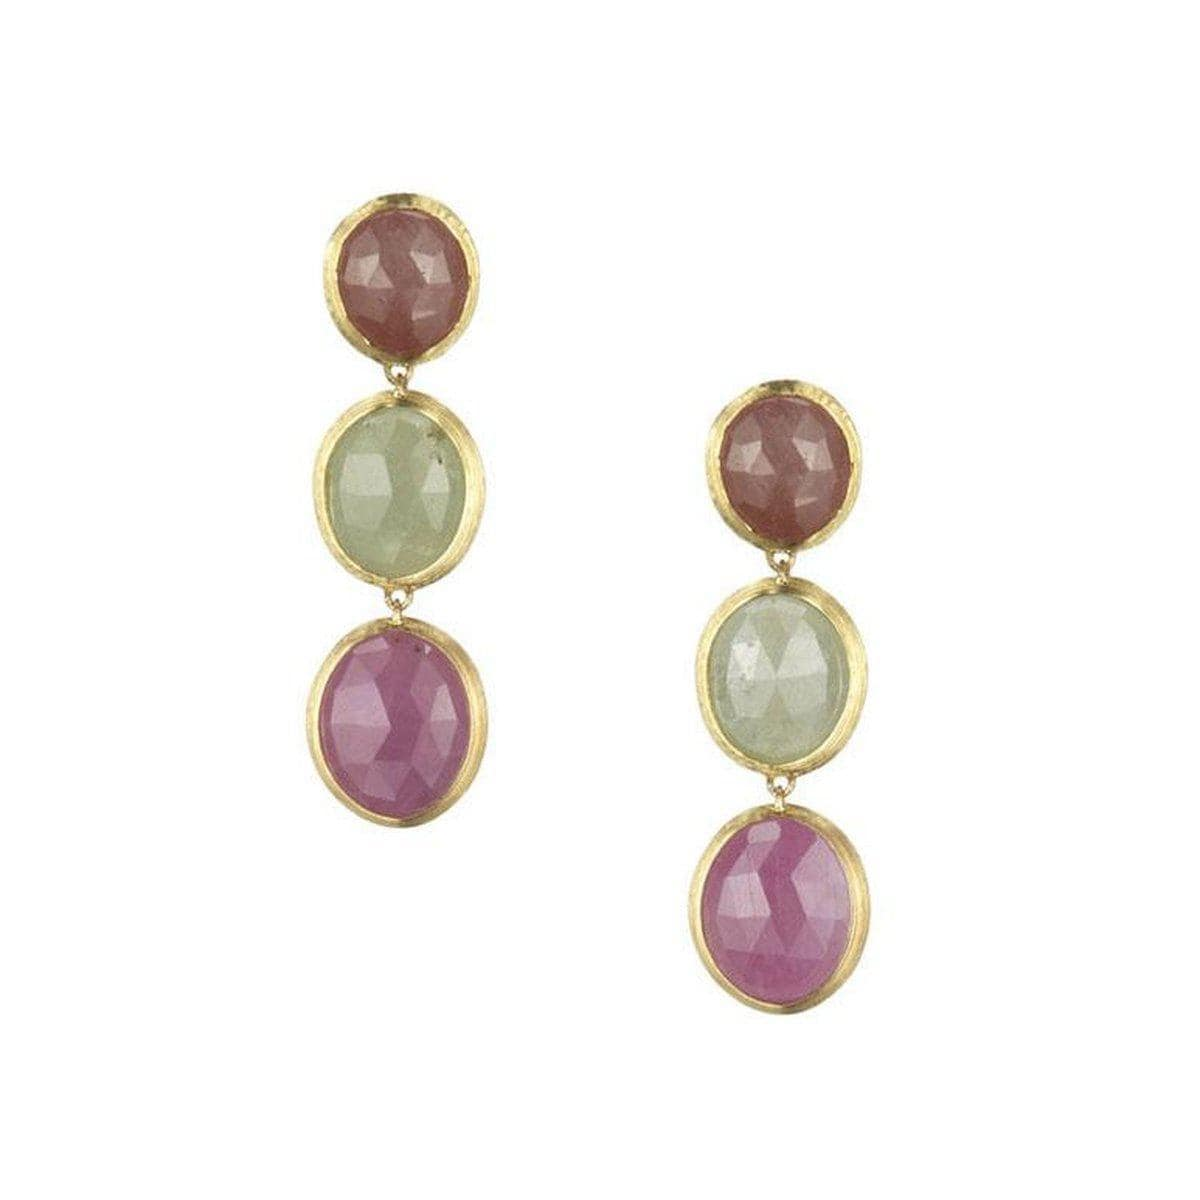 18k Siviglia Sapphire Earrings - OB105 MXZ Y-Marco Bicego-Renee Taylor Gallery